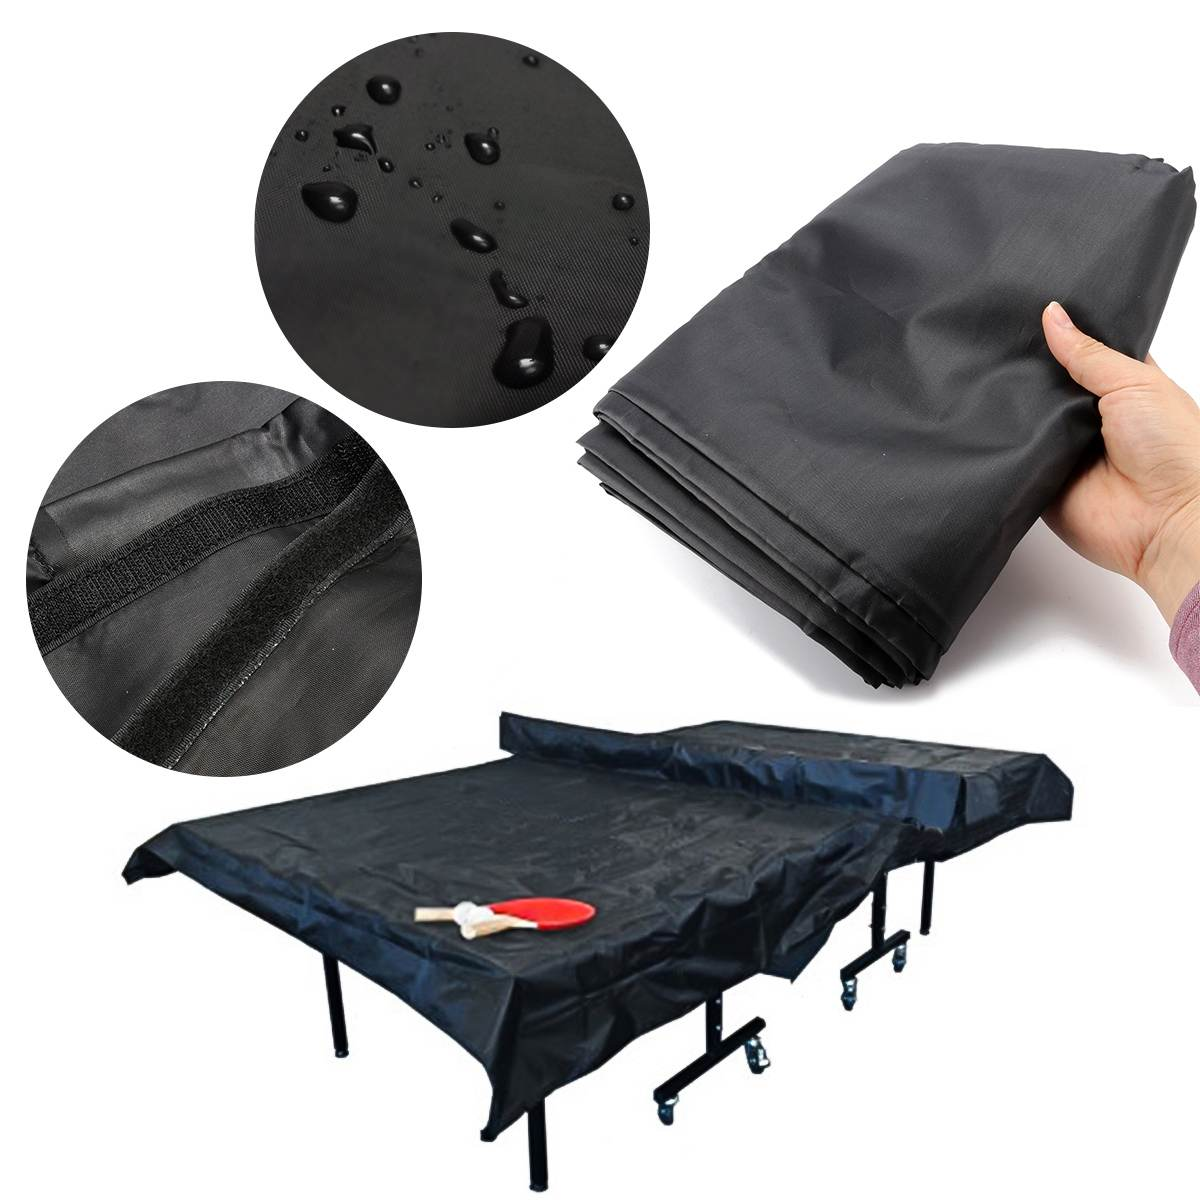 308x160x16cm High quality UV Resistance Indoor Waterproof Cover Upright Flat Table Tennis Table Cover308x160x16cm High quality UV Resistance Indoor Waterproof Cover Upright Flat Table Tennis Table Cover